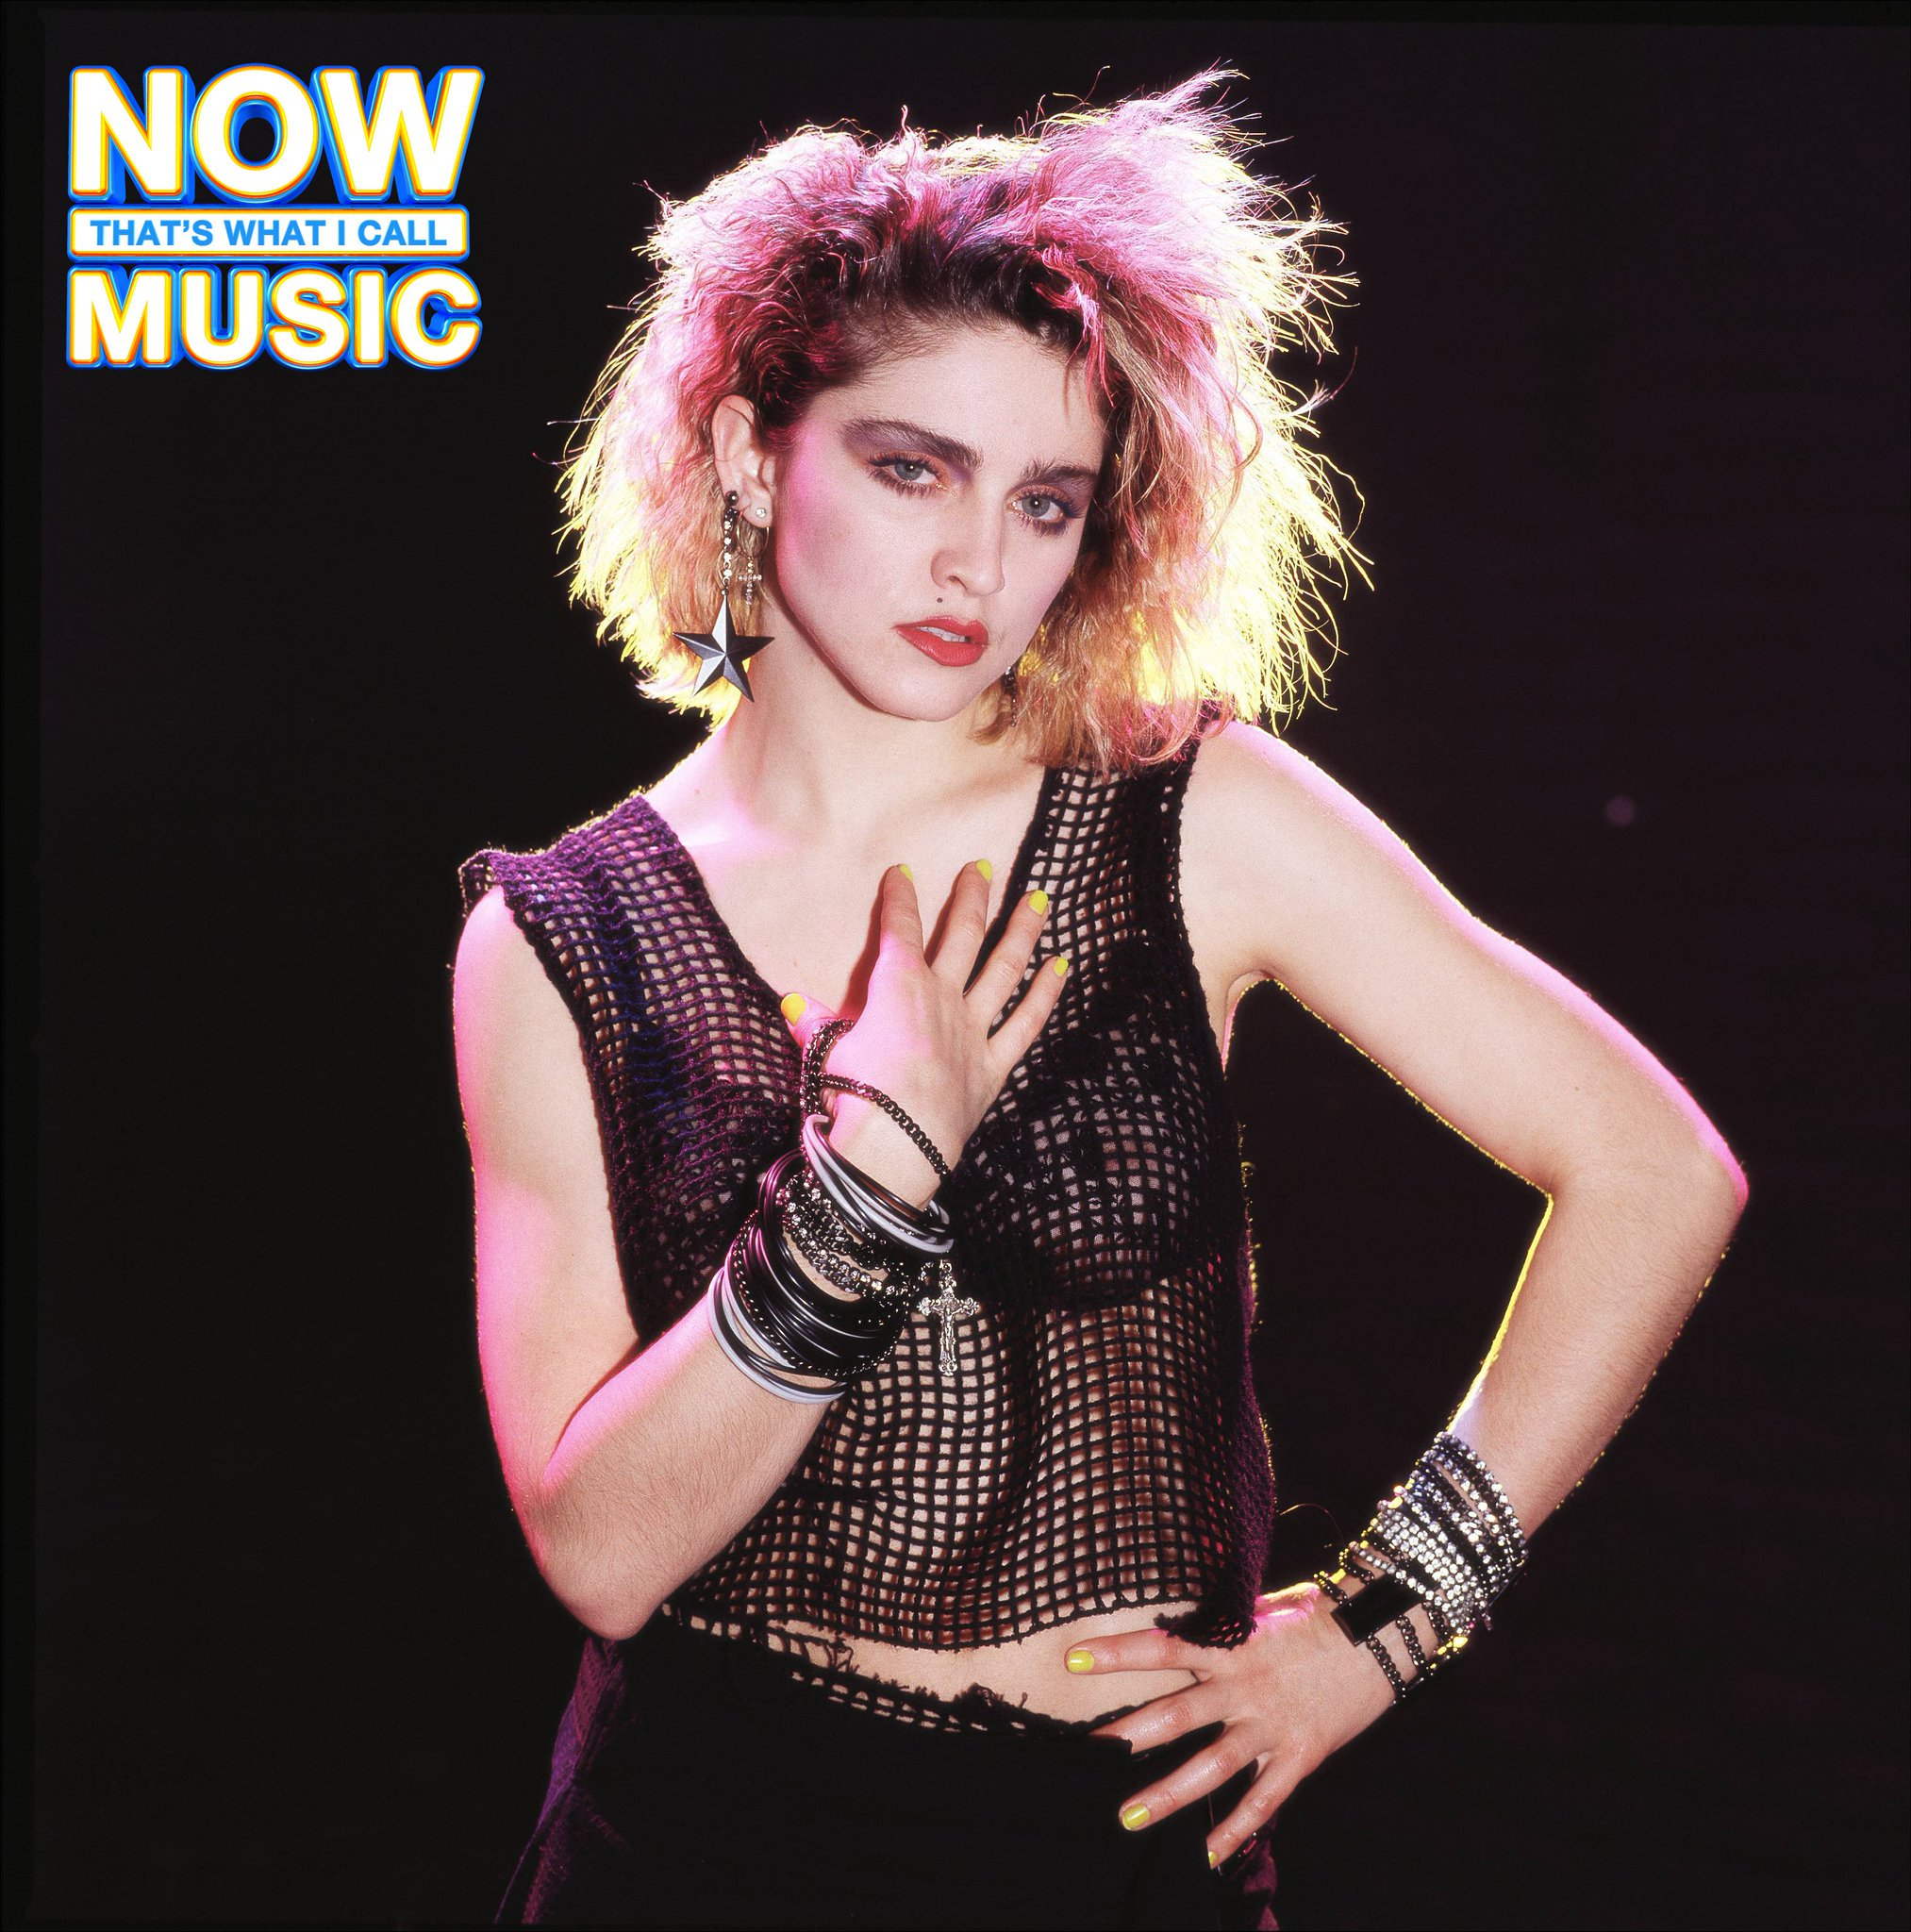 Happy Birthday to the Queen of 80s pop music    What is your favourite Madge song to sing to??